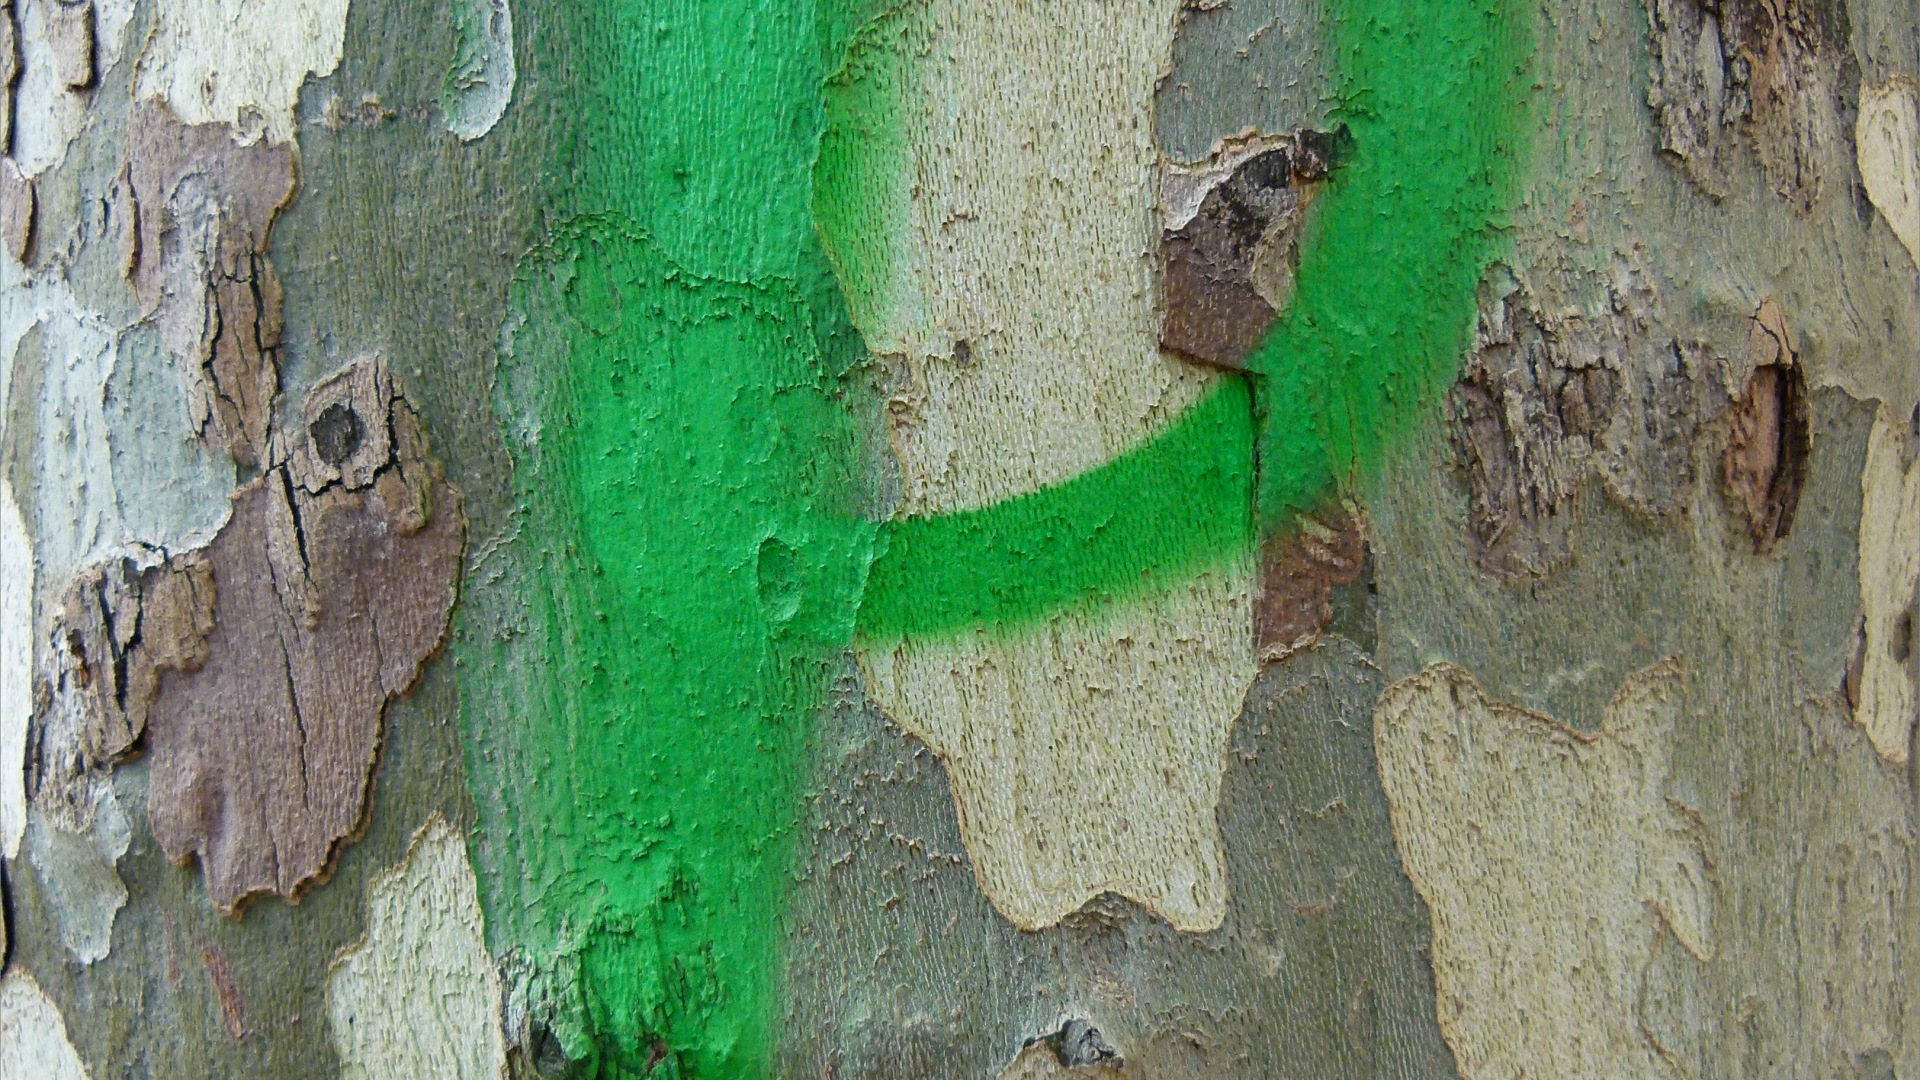 Green spray-paint graffiti on plane tree bark